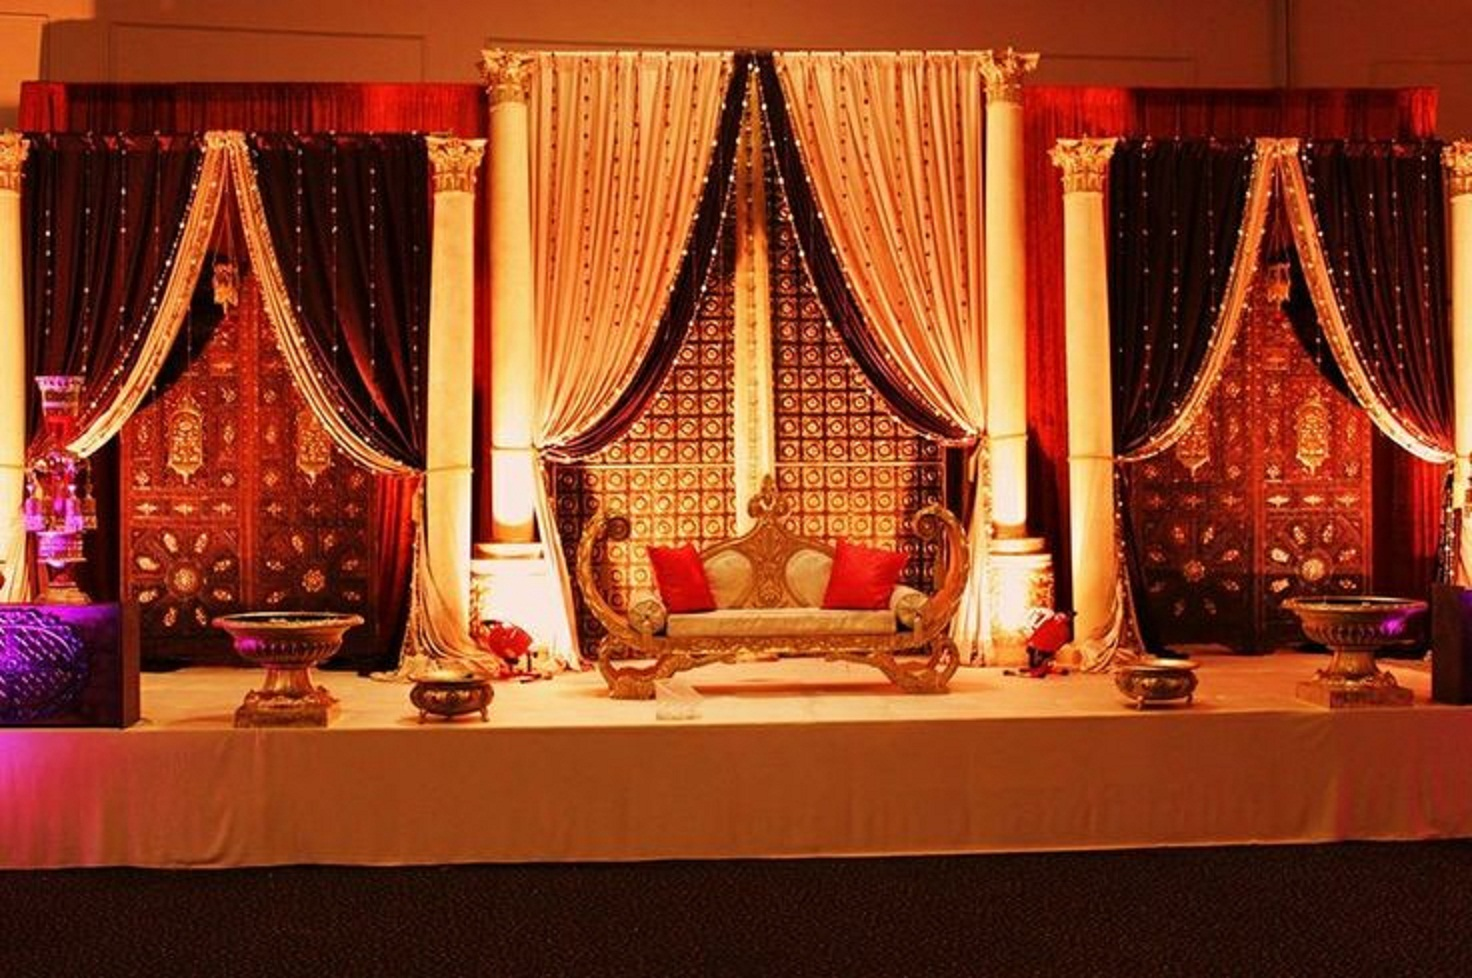 Best mehndi stage decoration ideas designs 2015 images hd wallpaper all 4u wallpaper Latest decoration ideas